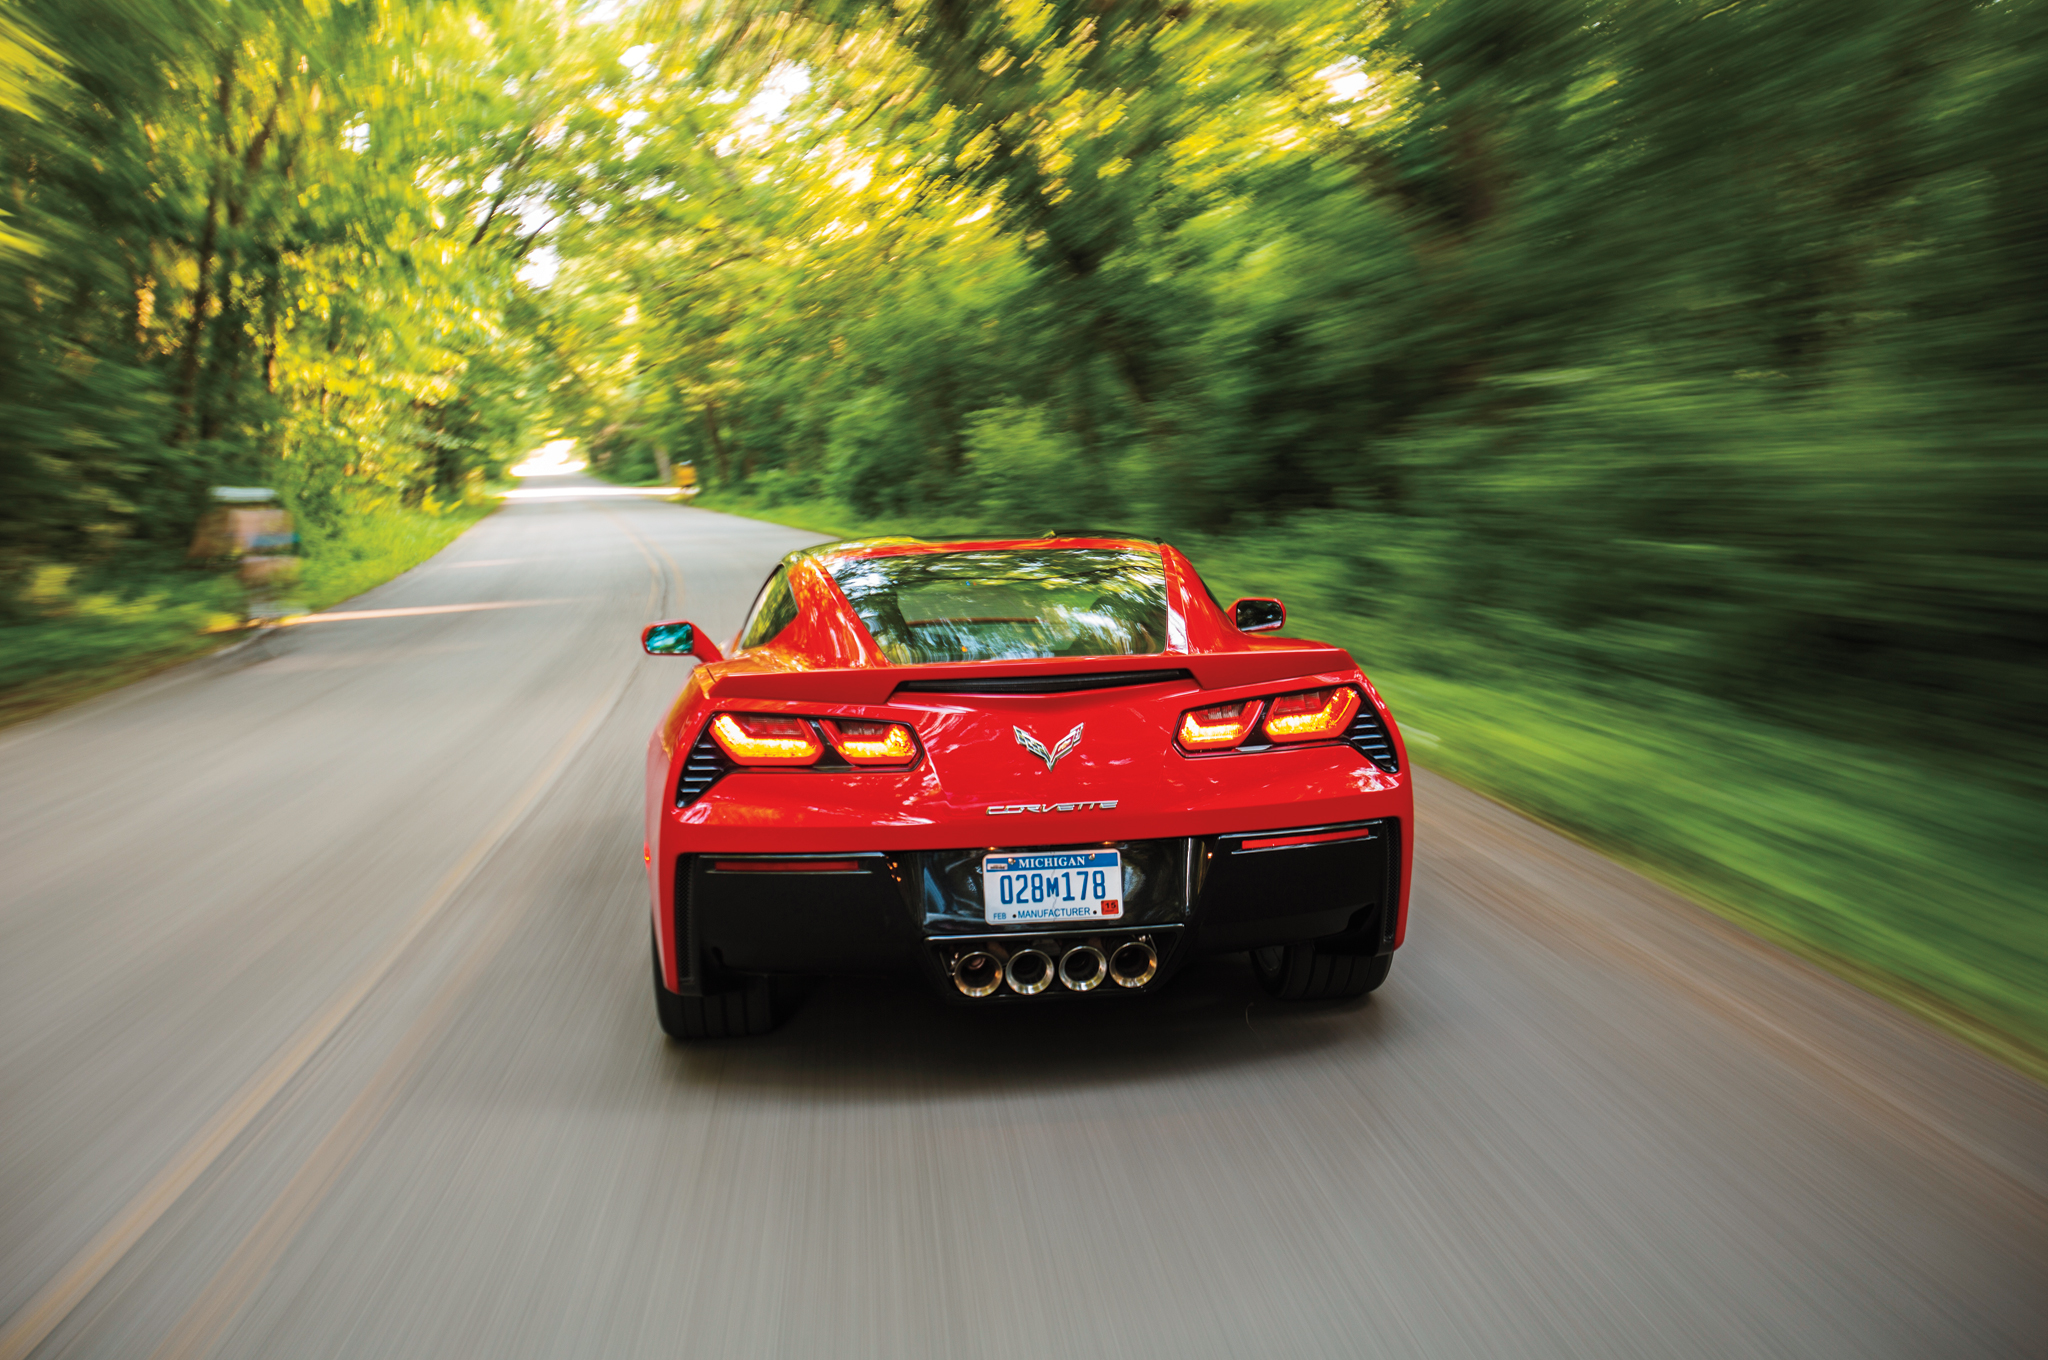 2014 Chevrolet Corvette Stingray Z51 Rear Photo (Photo 5 of 7)